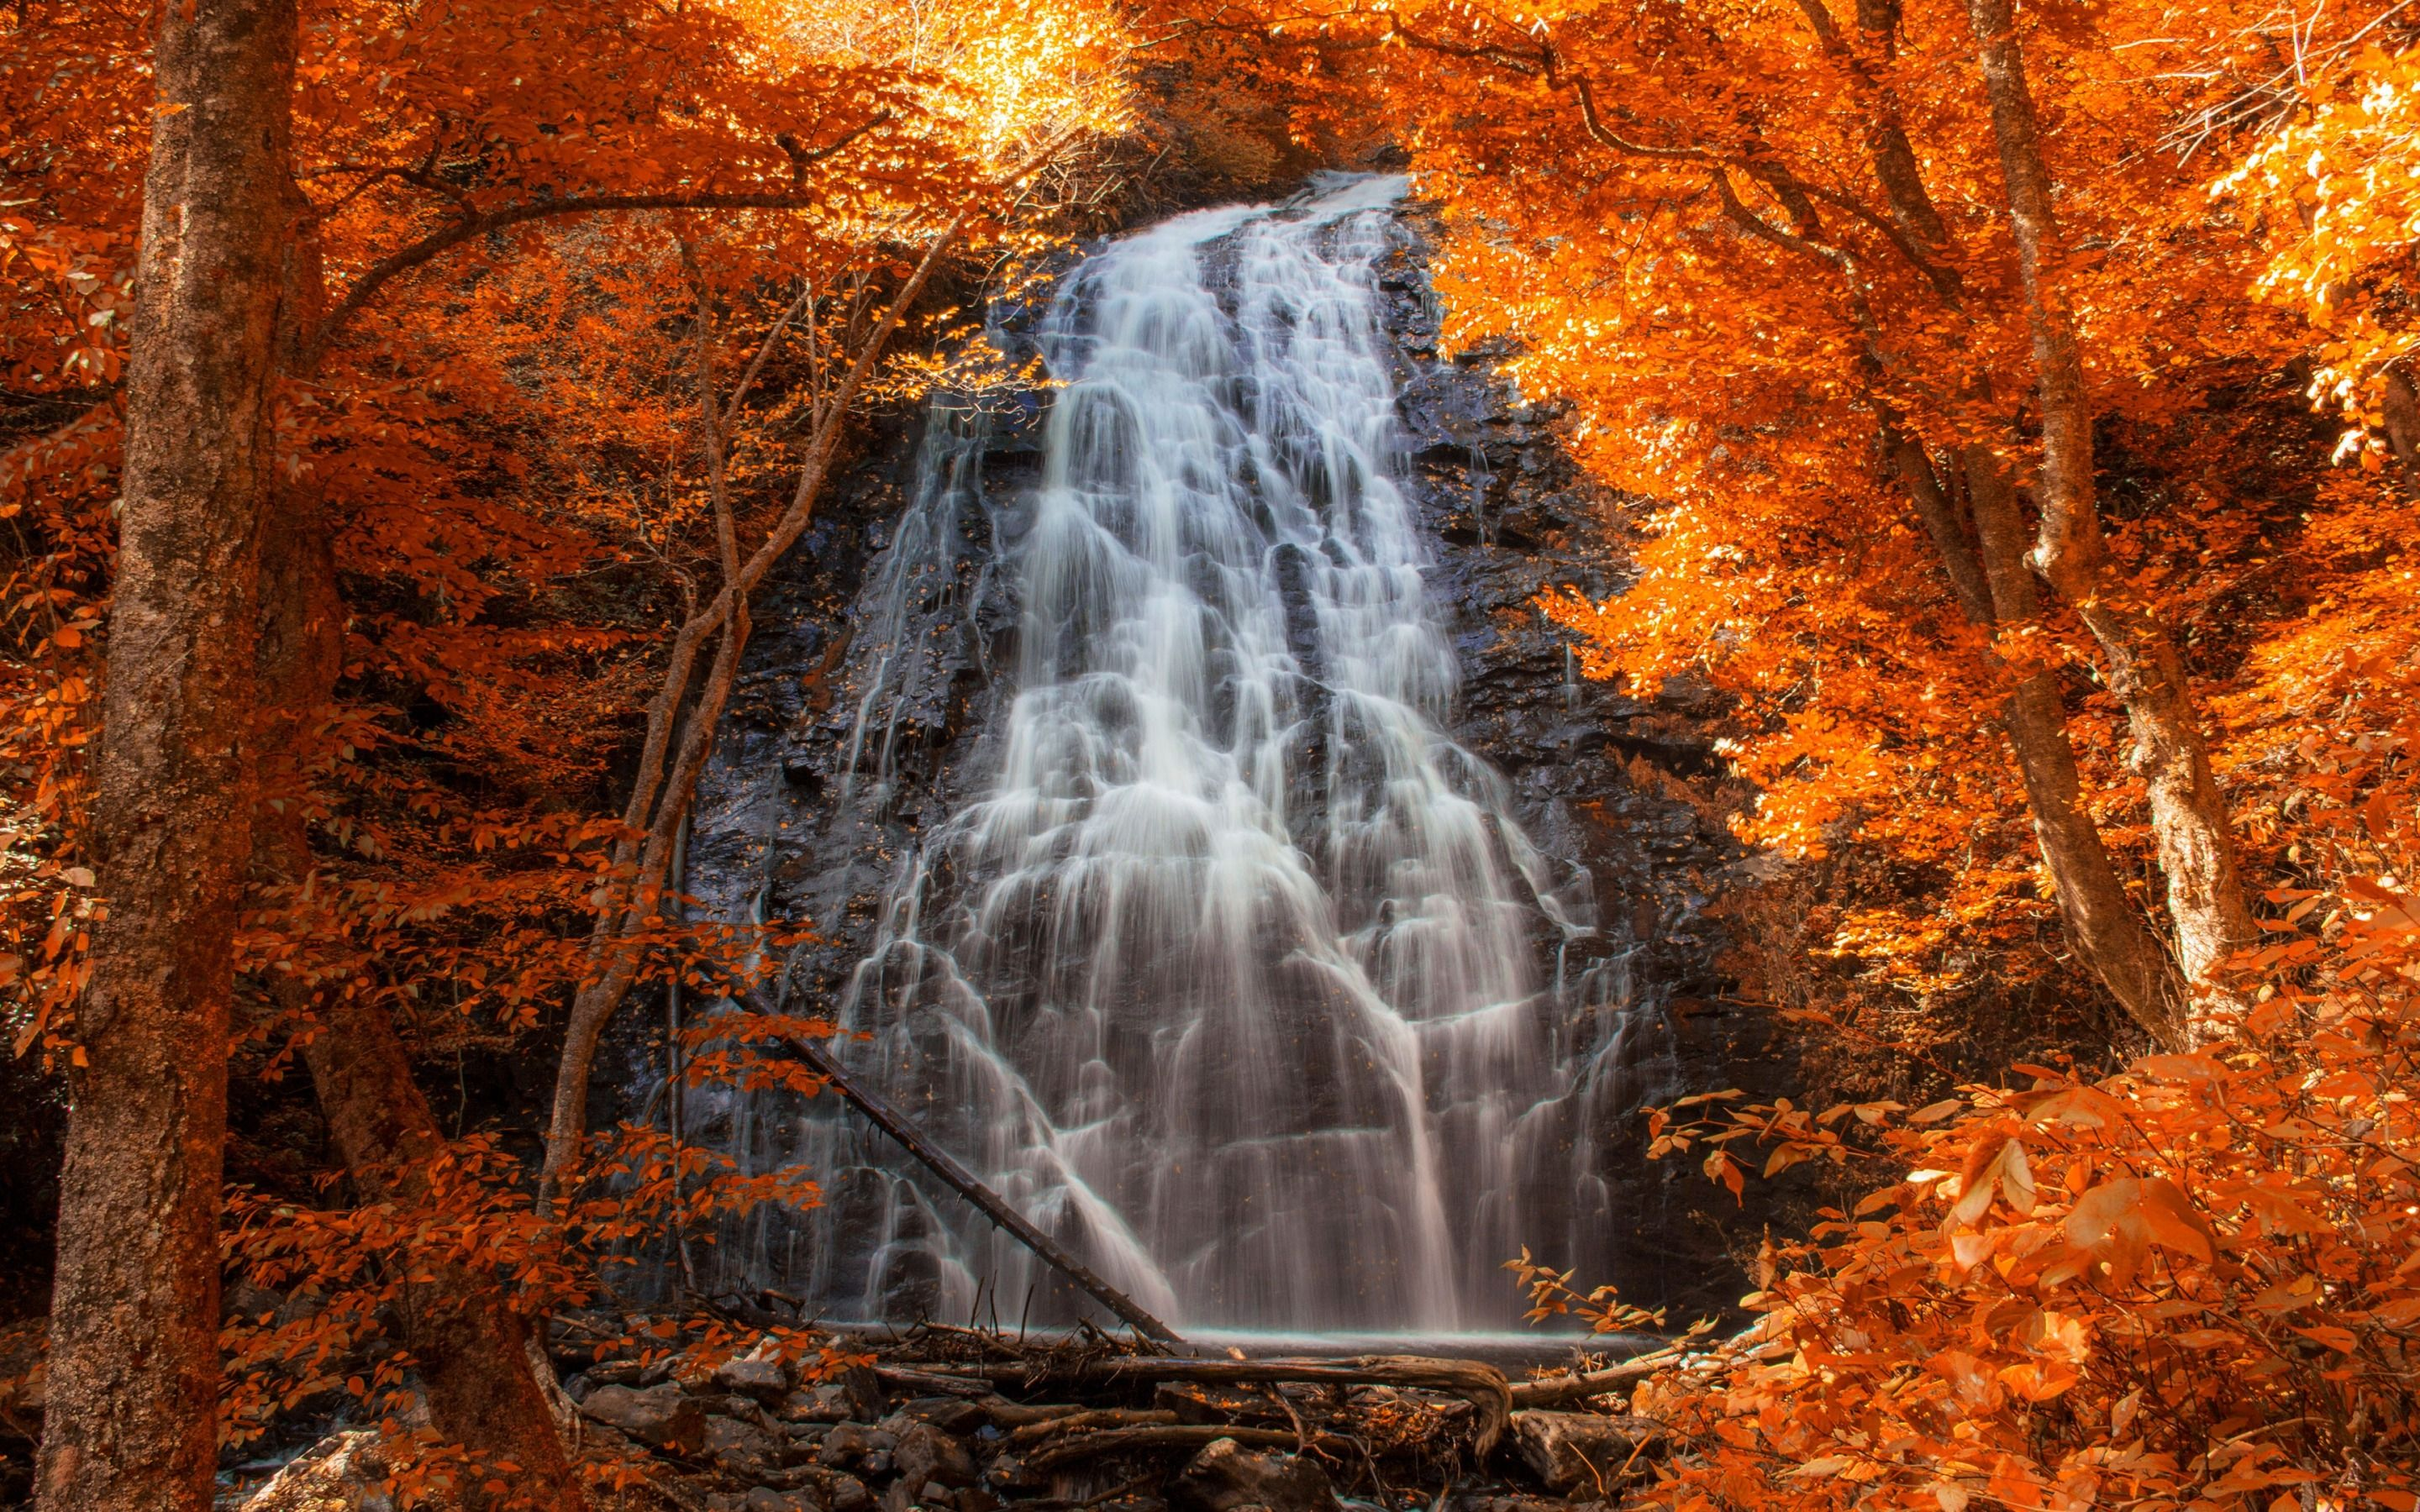 Appalachian Mountains Autumn landscape, Waterfall